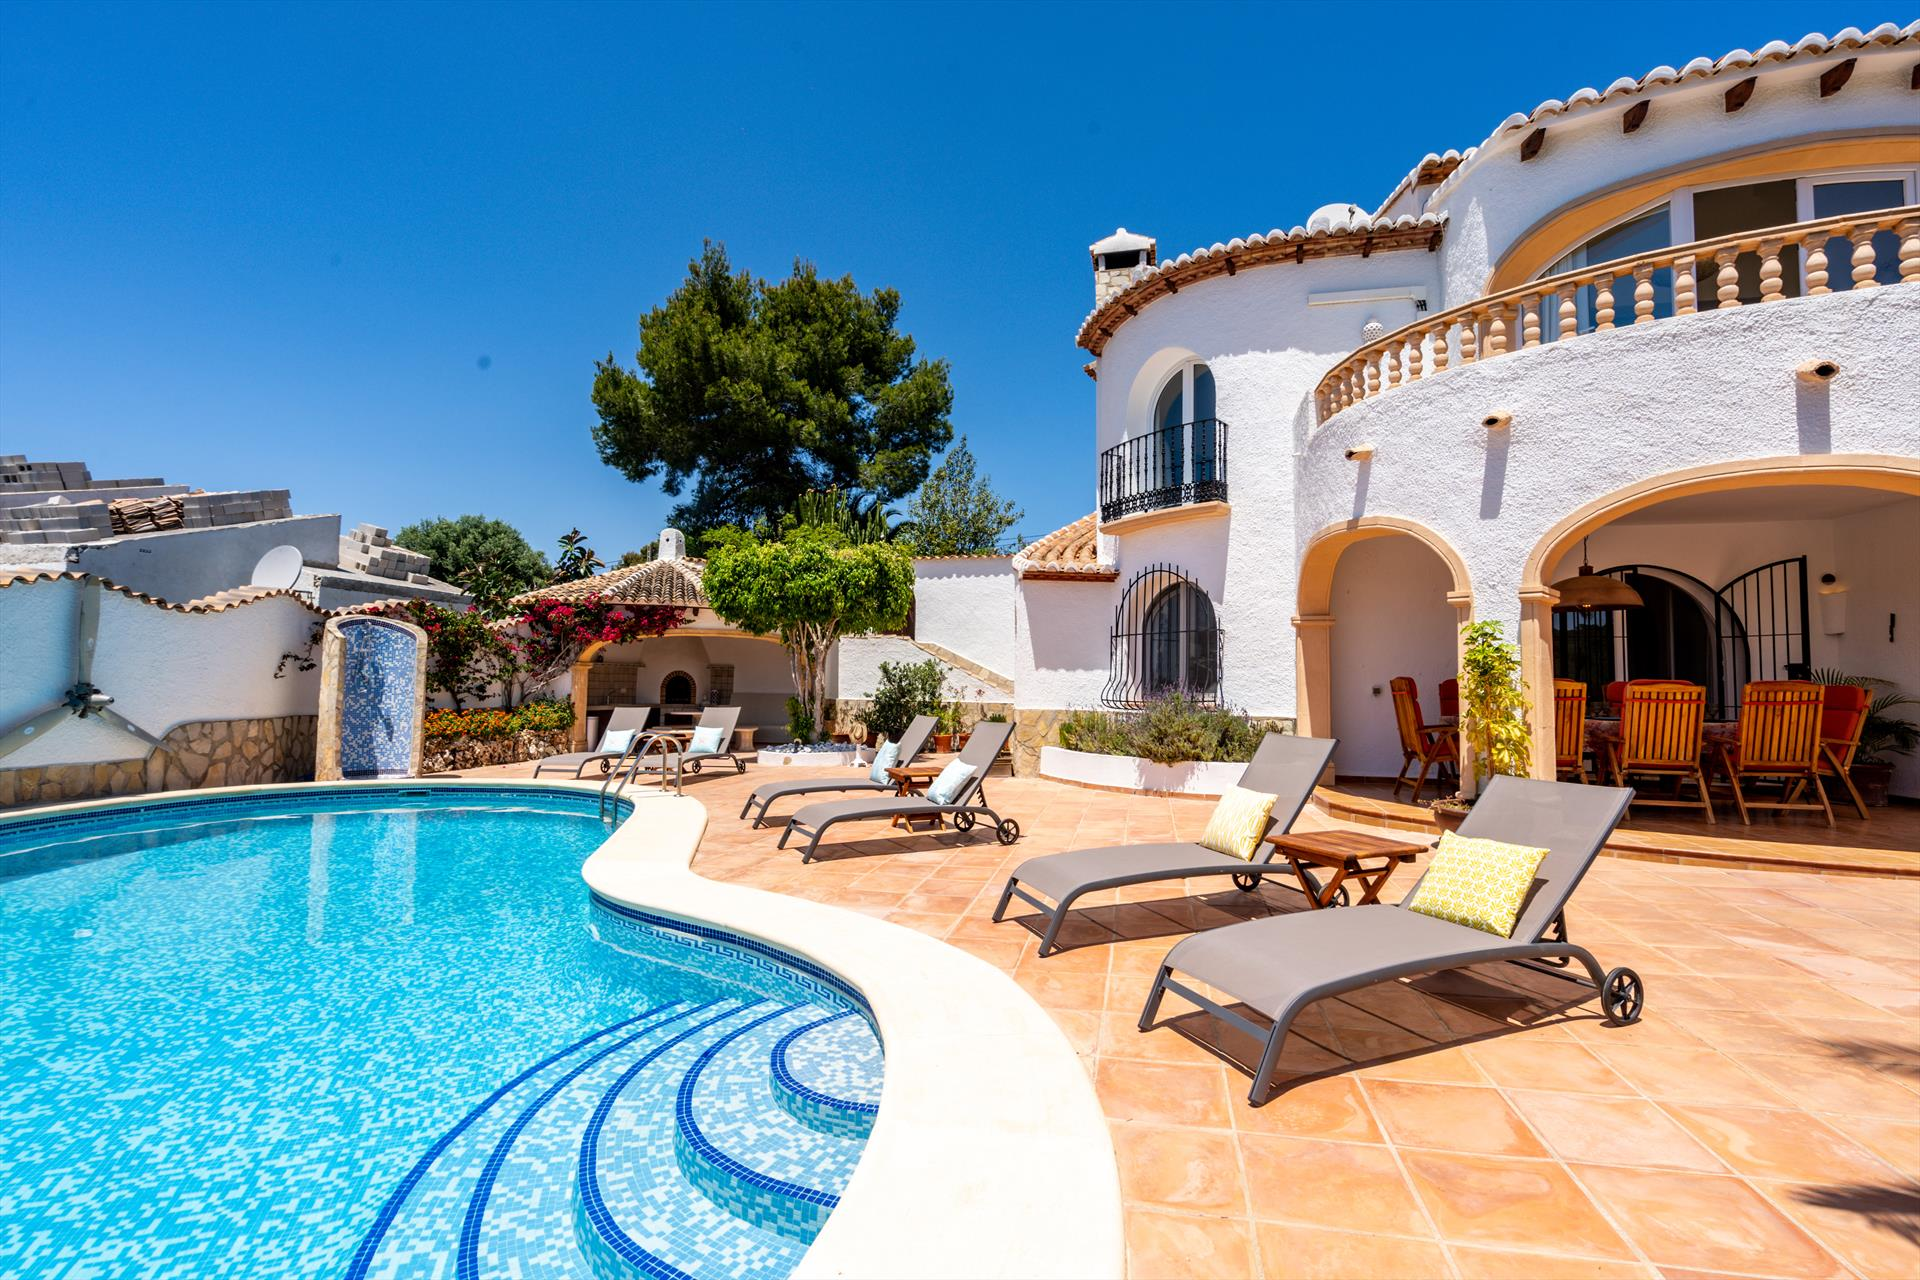 Entre Mar y Tierra 4 pax, Large and nice villa in Javea, on the Costa Blanca, Spain  with private pool for 4 persons...